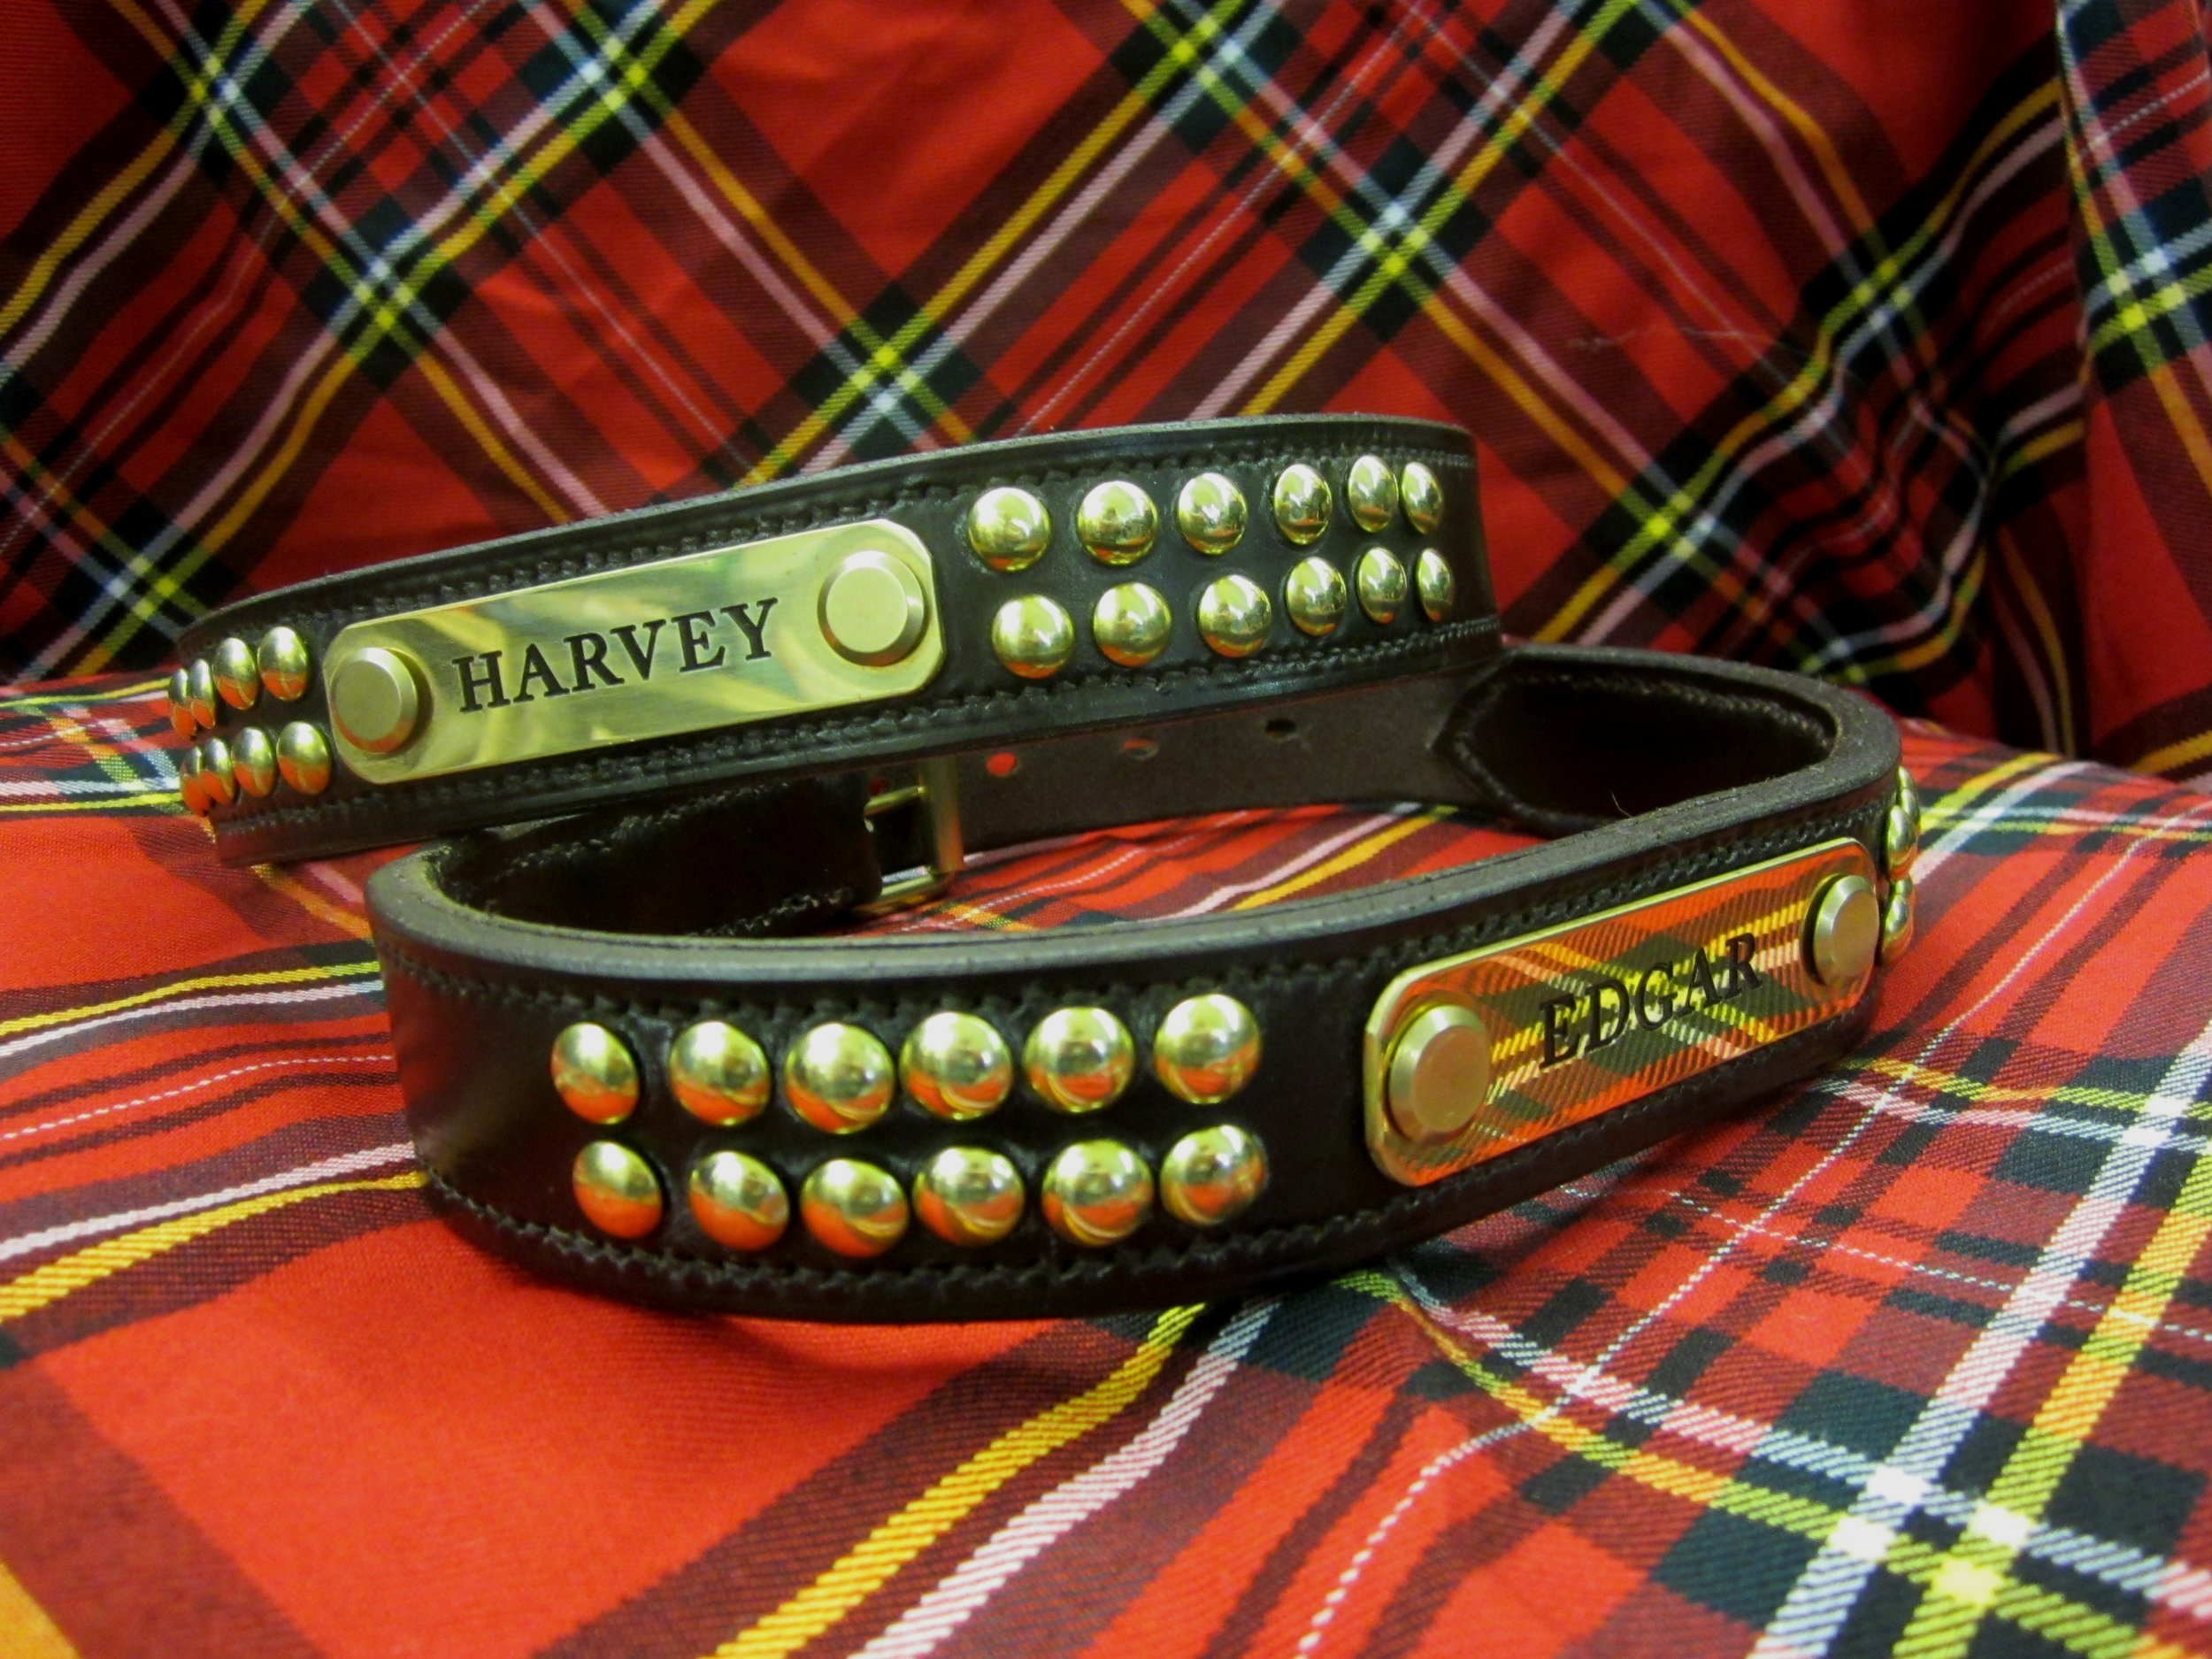 Special request dog collars - These were made as copies of some treasured well-worn collars. The lovely engraved nameplates are made for us by a local company.